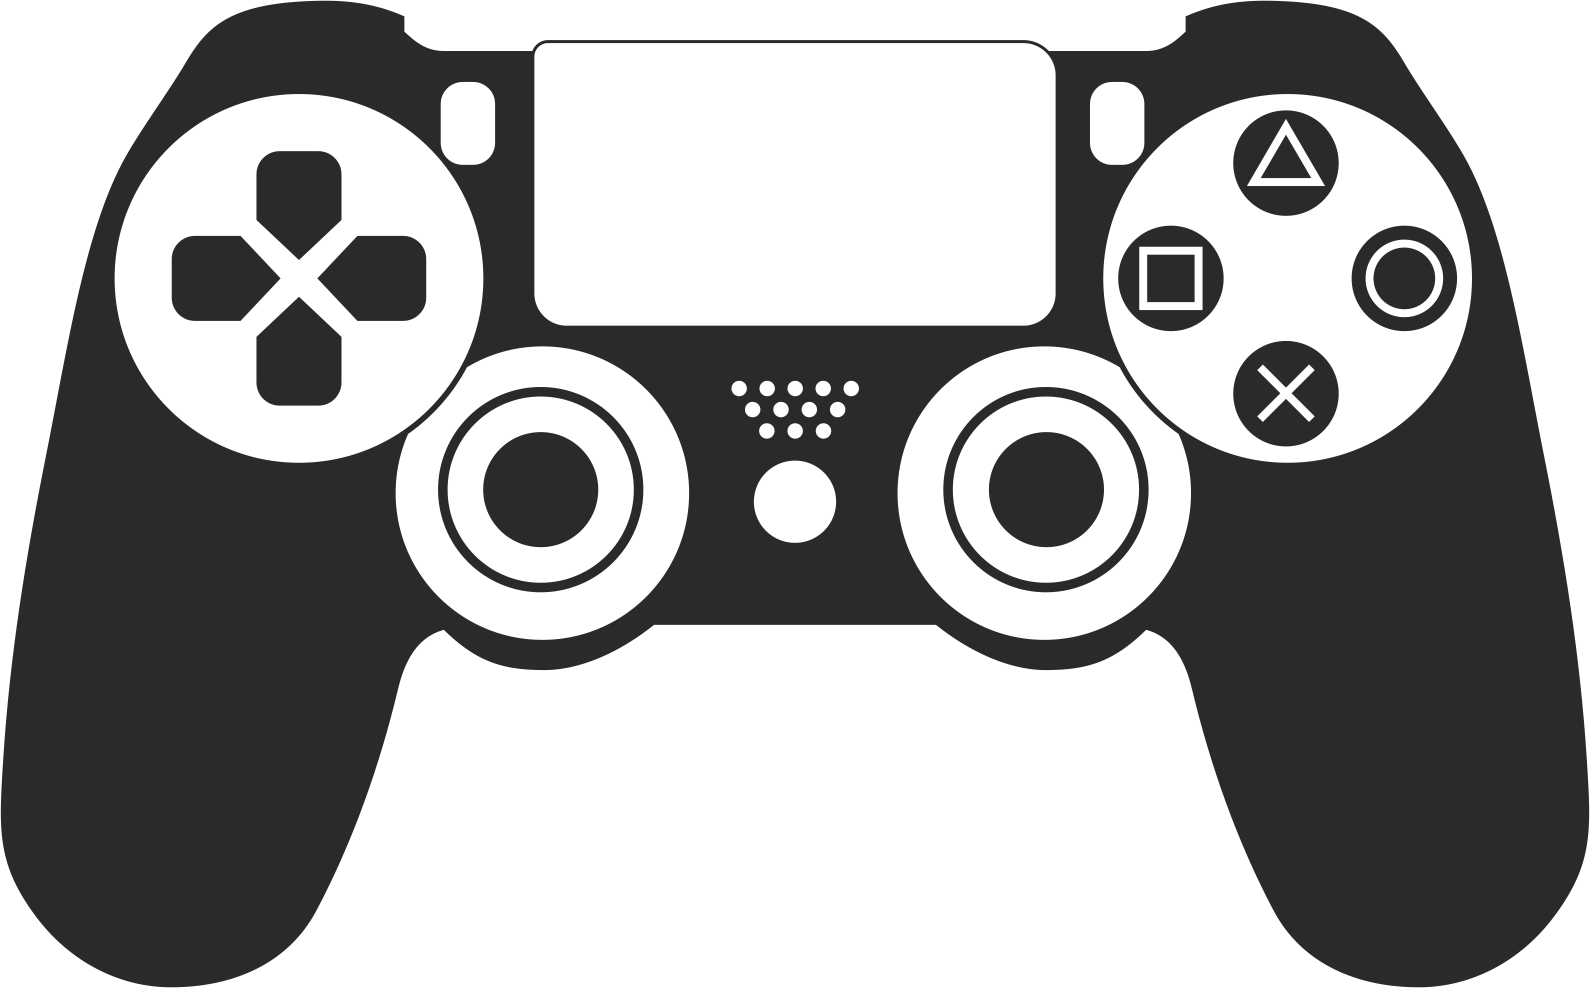 PlayStation 4 Game Controllers Video game DualShock.